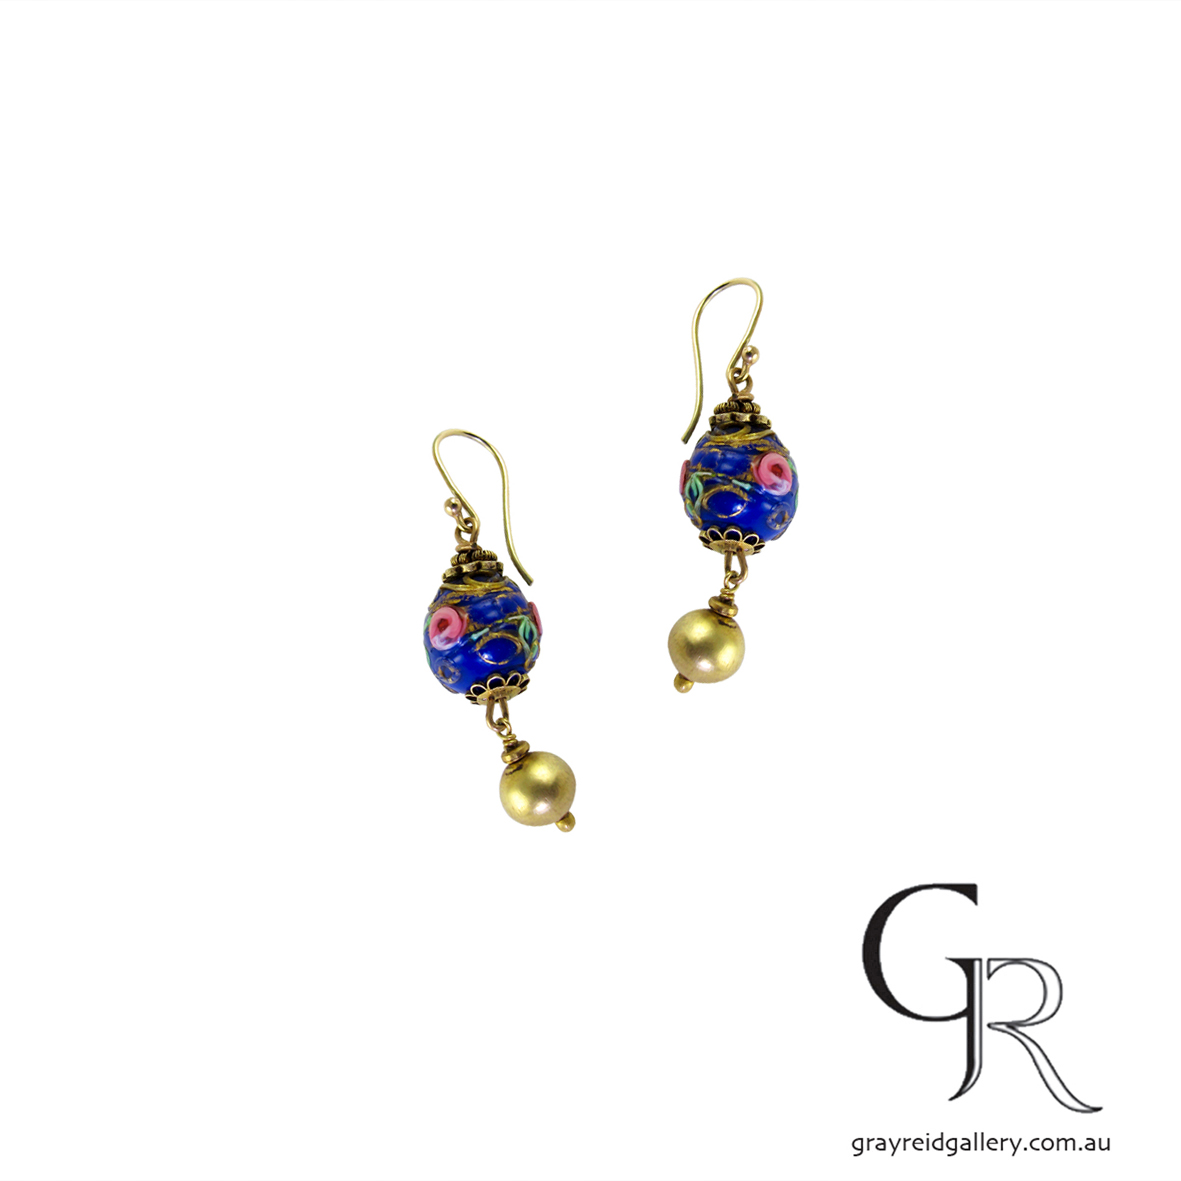 Antique Glass Earrings